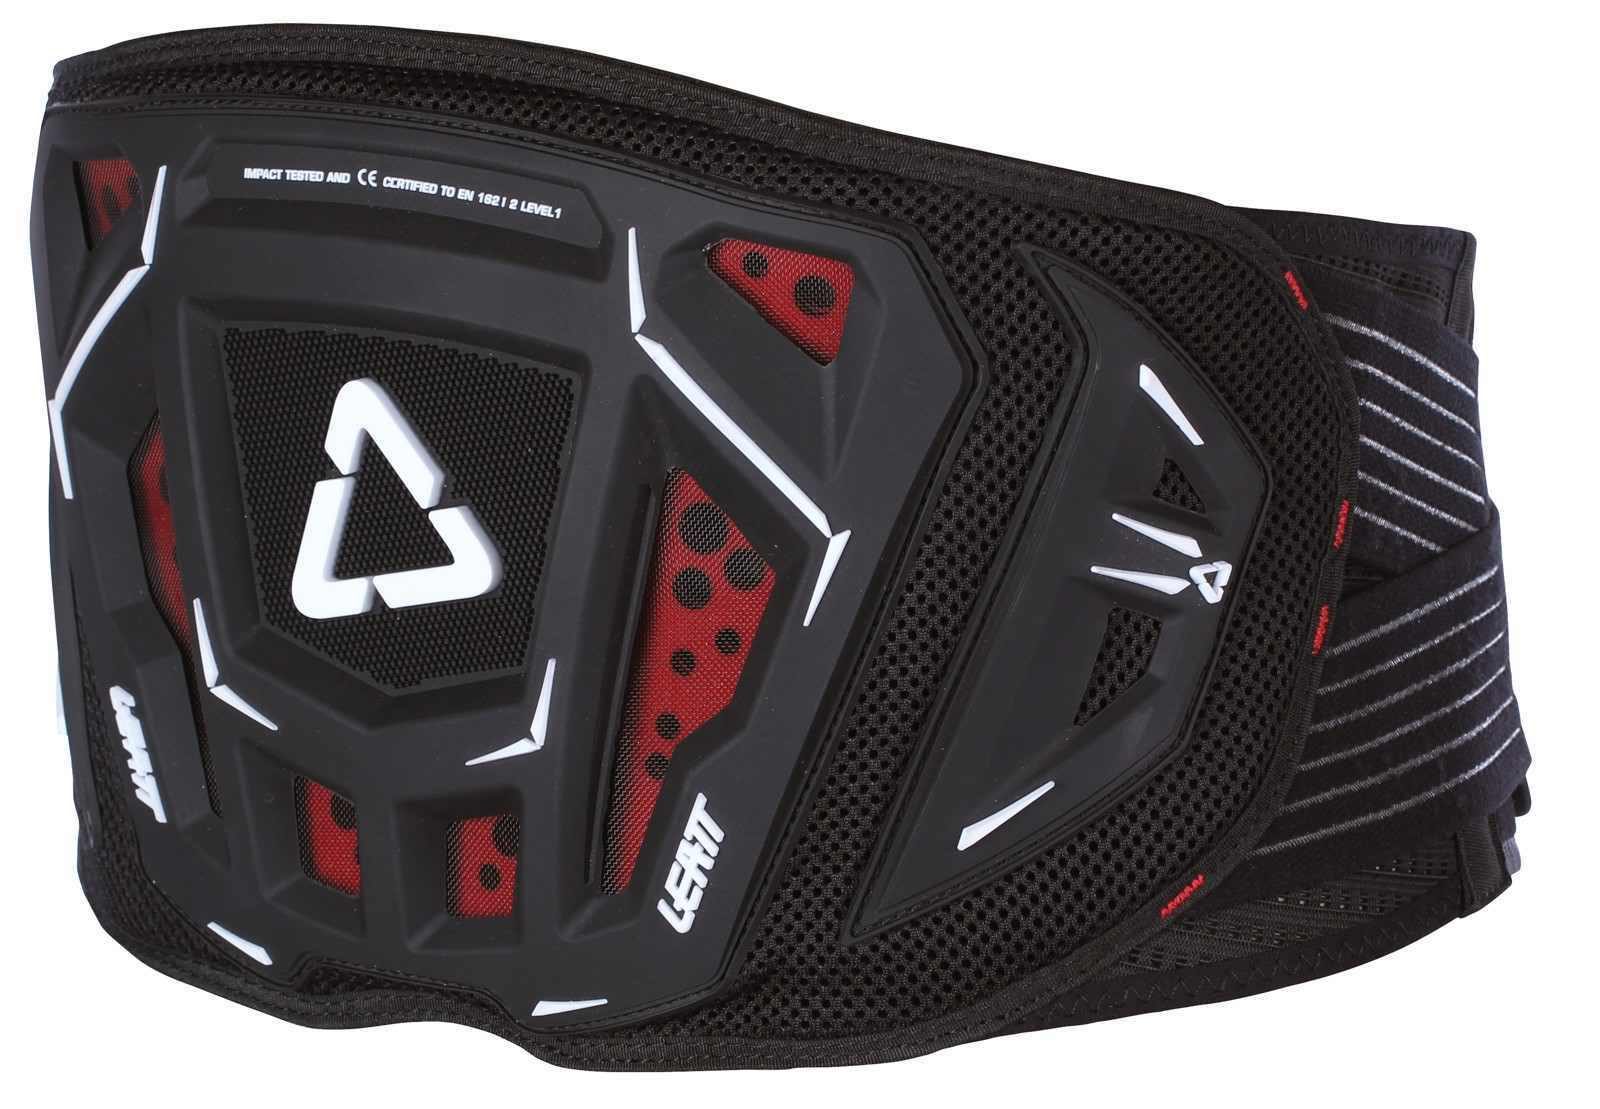 LEATT PREMIUM KIDNEY BELT SIZE SMALL MEDIUM  28 - 34  MOTOCROSS ENDURO